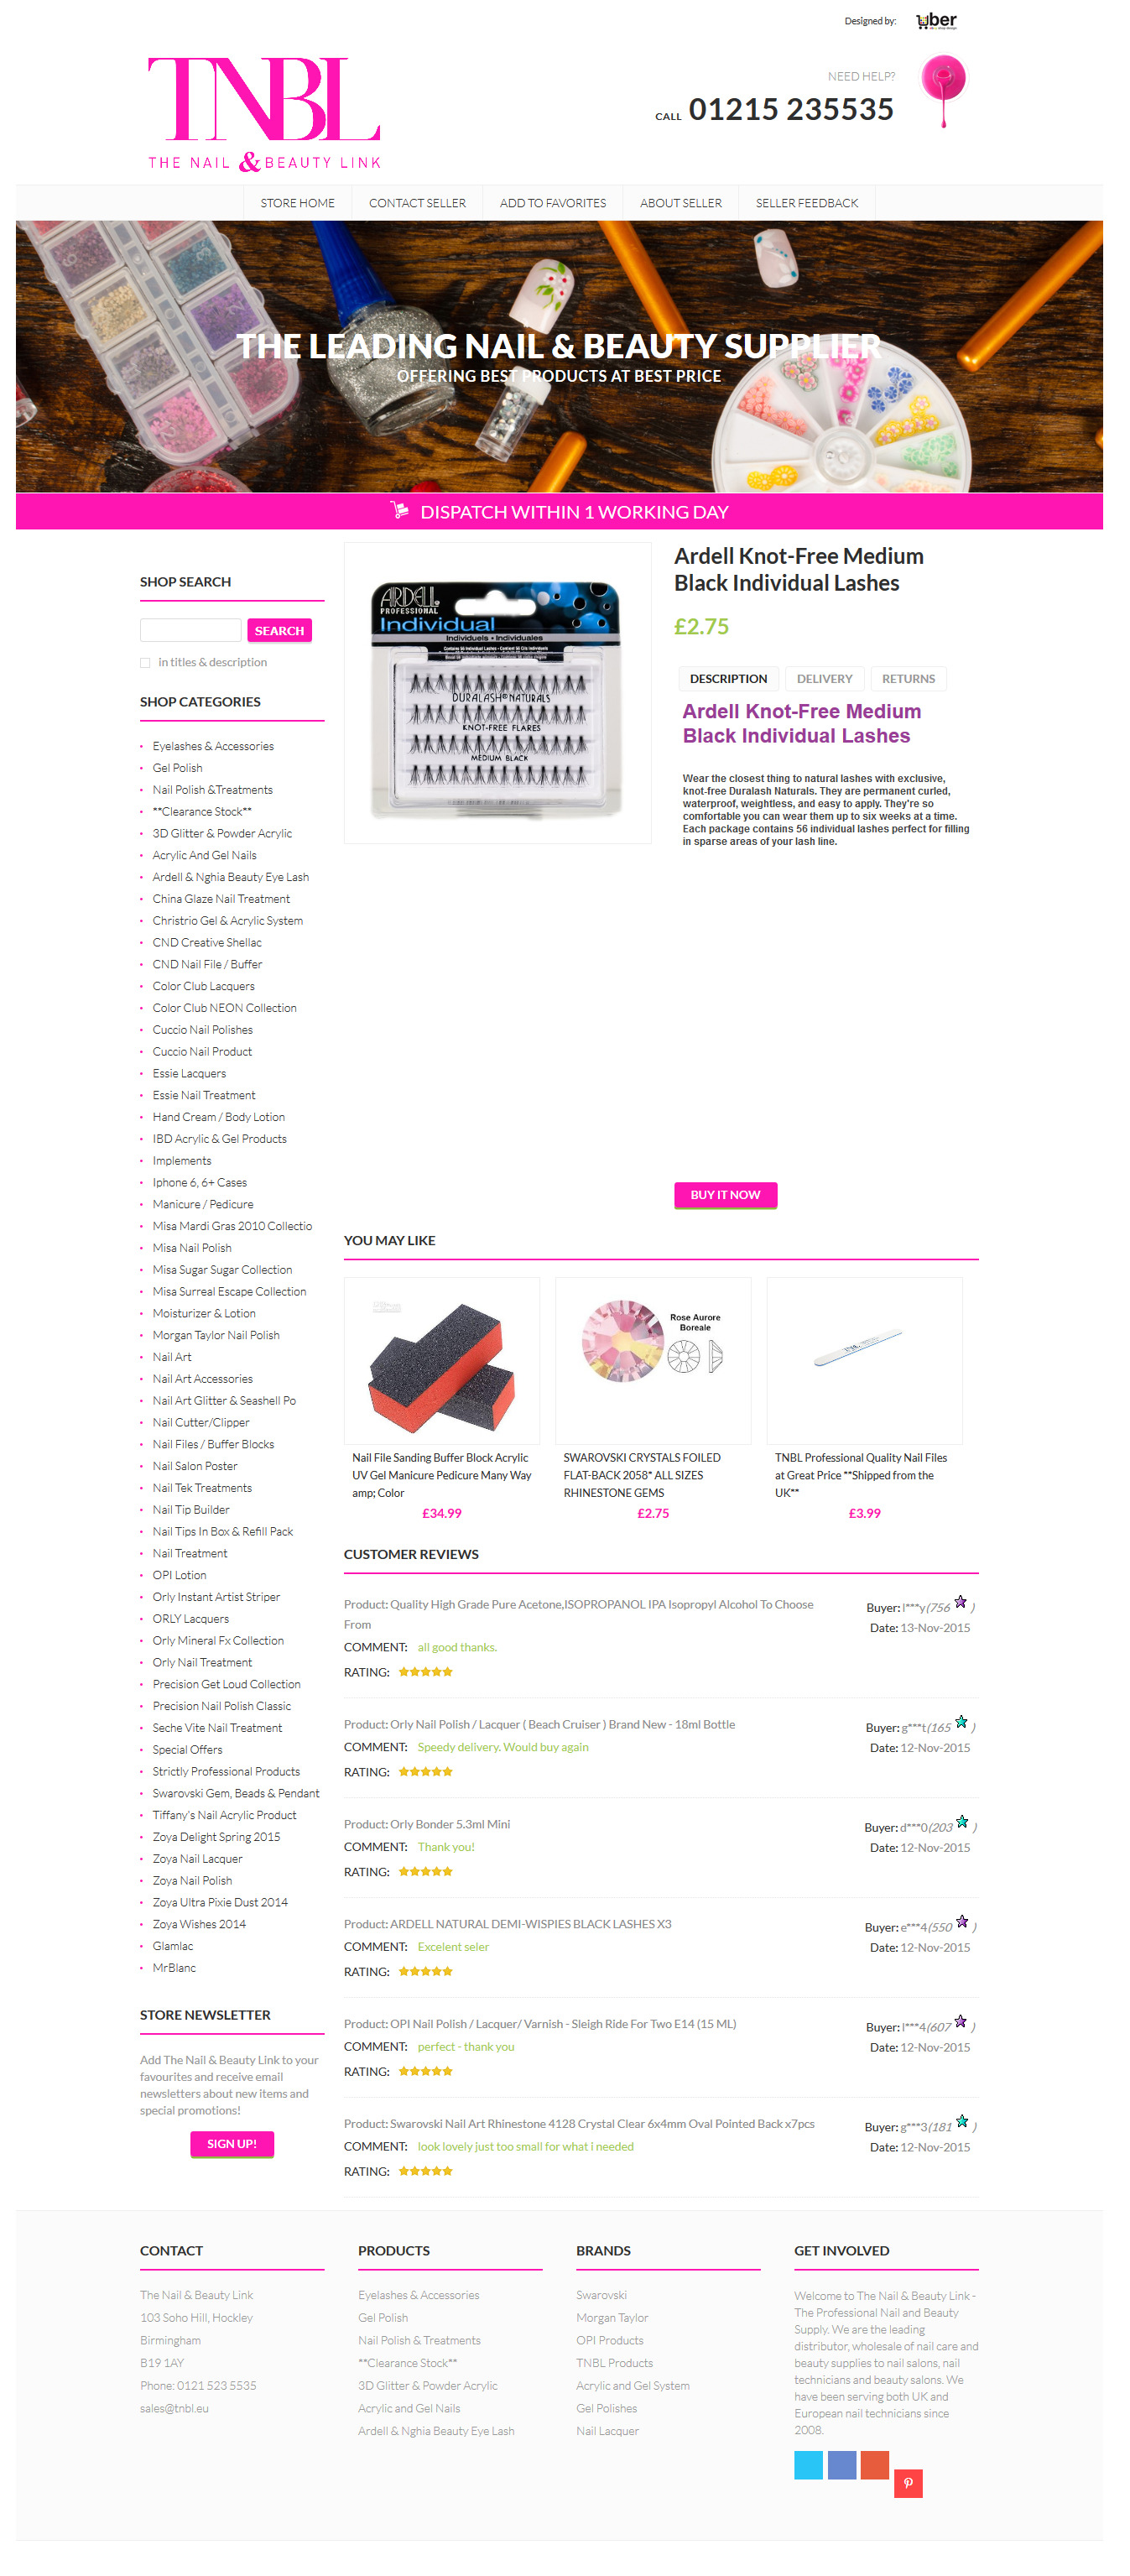 8df80cfab1f The Nail and Beauty Store - TNBL. category page view of TNBL shop design.  TNBL shop item page view